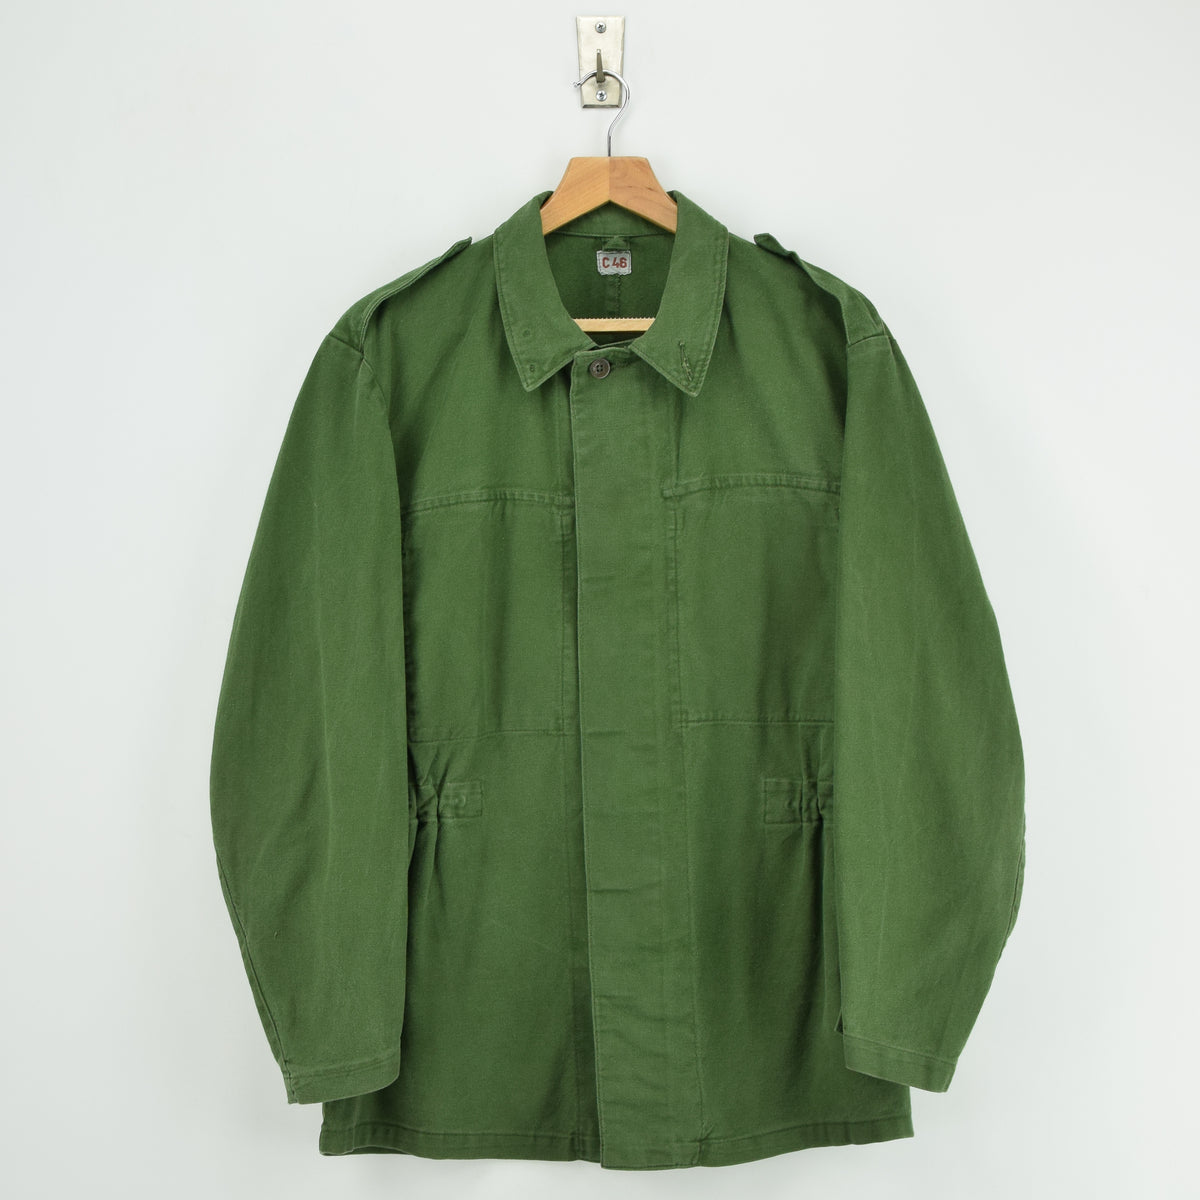 Vintage Swedish Worker Style Distressed Green Military Field Shirt Jacket M front